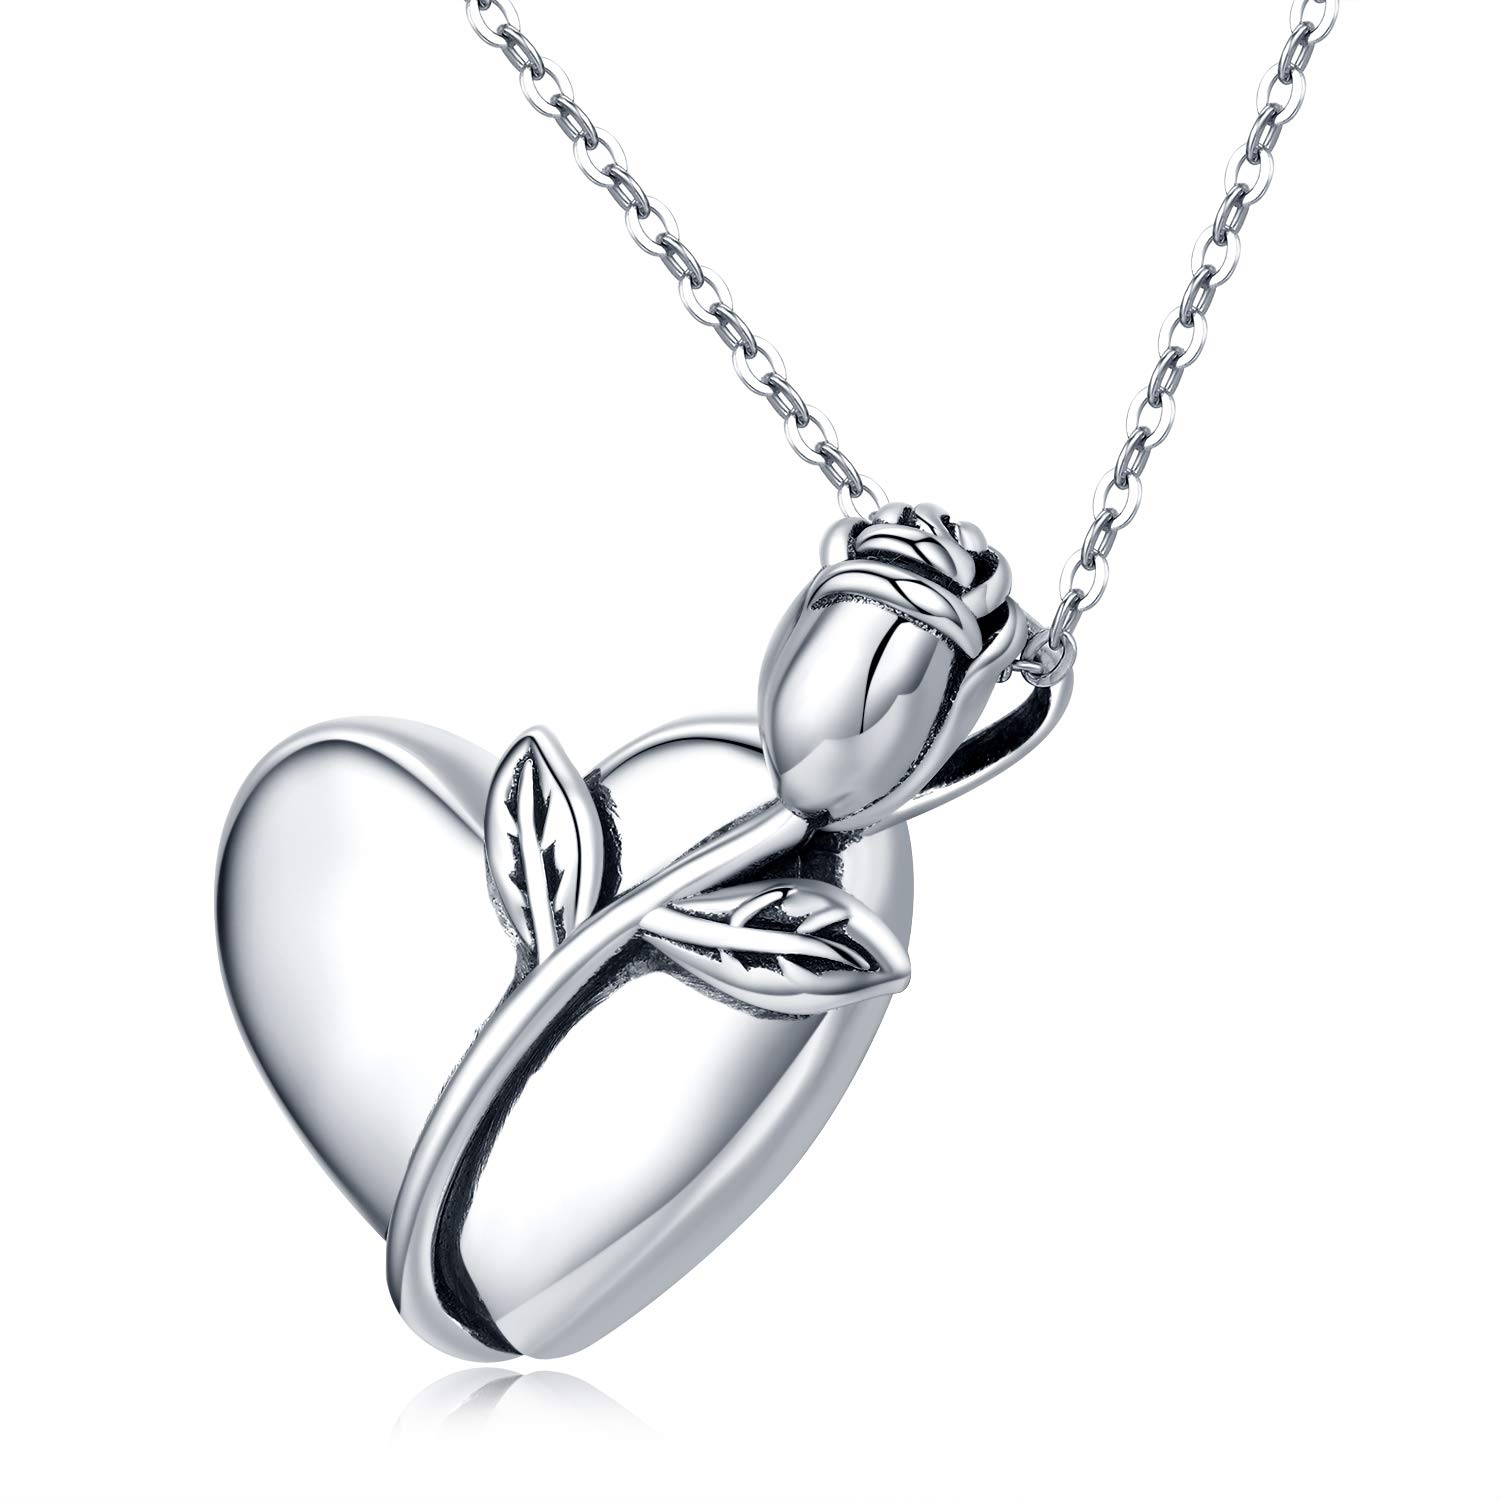 PRAYMOS 925 Sterling Silver Urn Necklace for Ashes Cremation Jewelry for Ashes of Loved Ones Keepsake